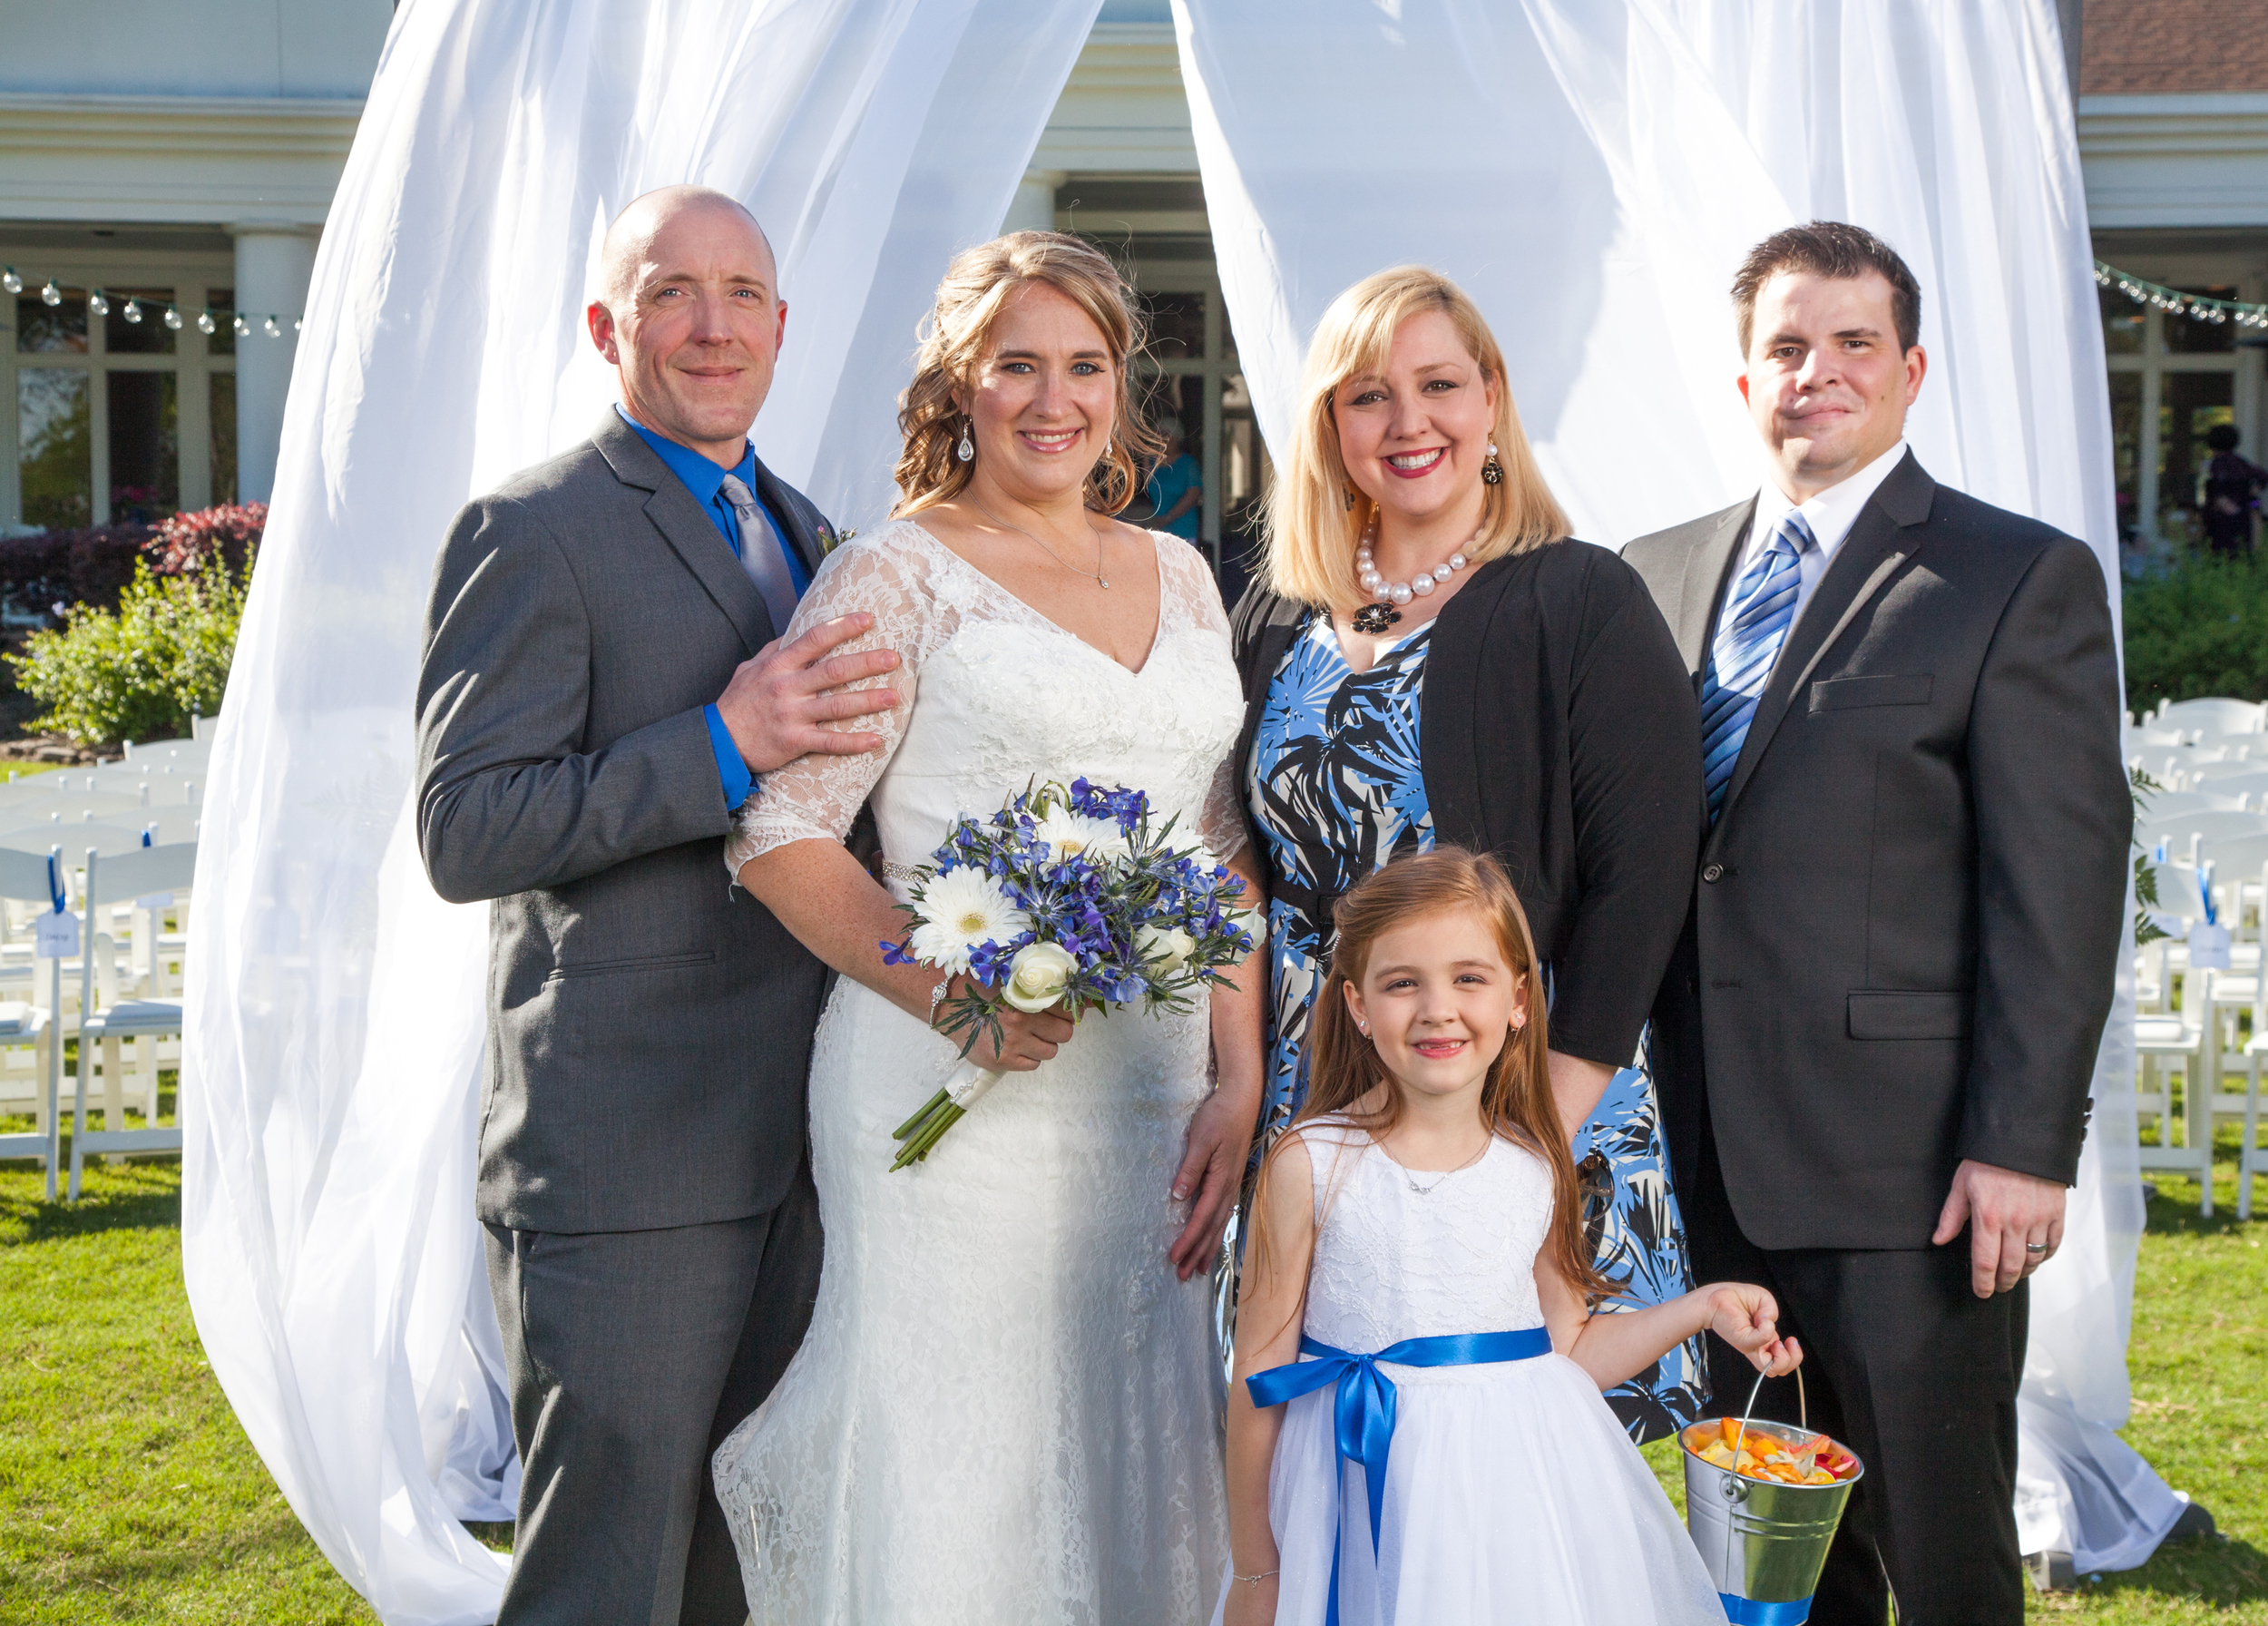 More group portraits with the arbor draped in shear white fabric at the background.